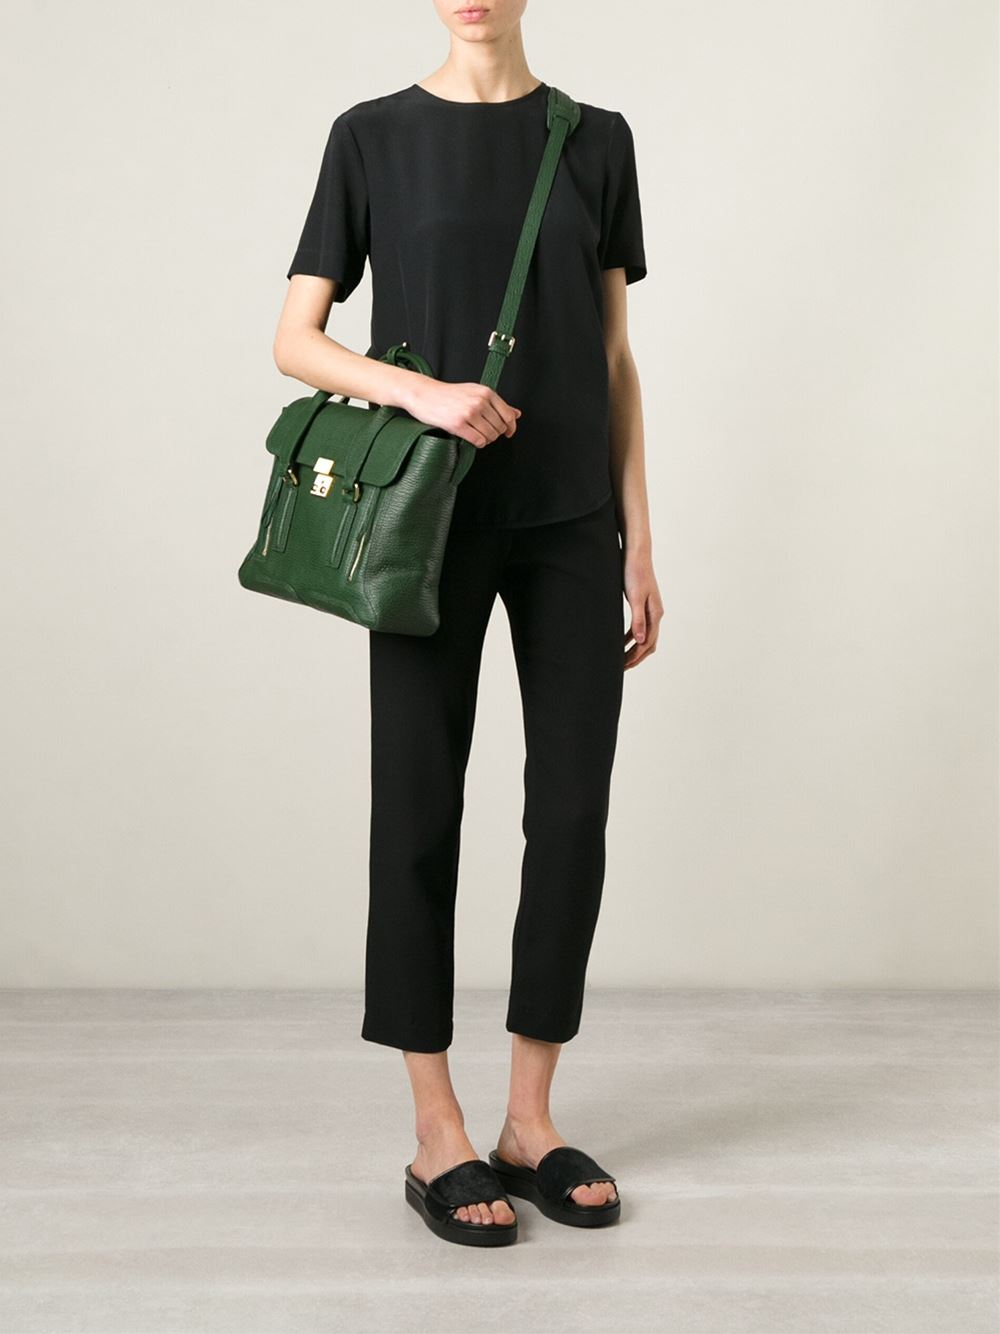 3.1 Phillip Lim Leather Large 'pashli' Tote in Green